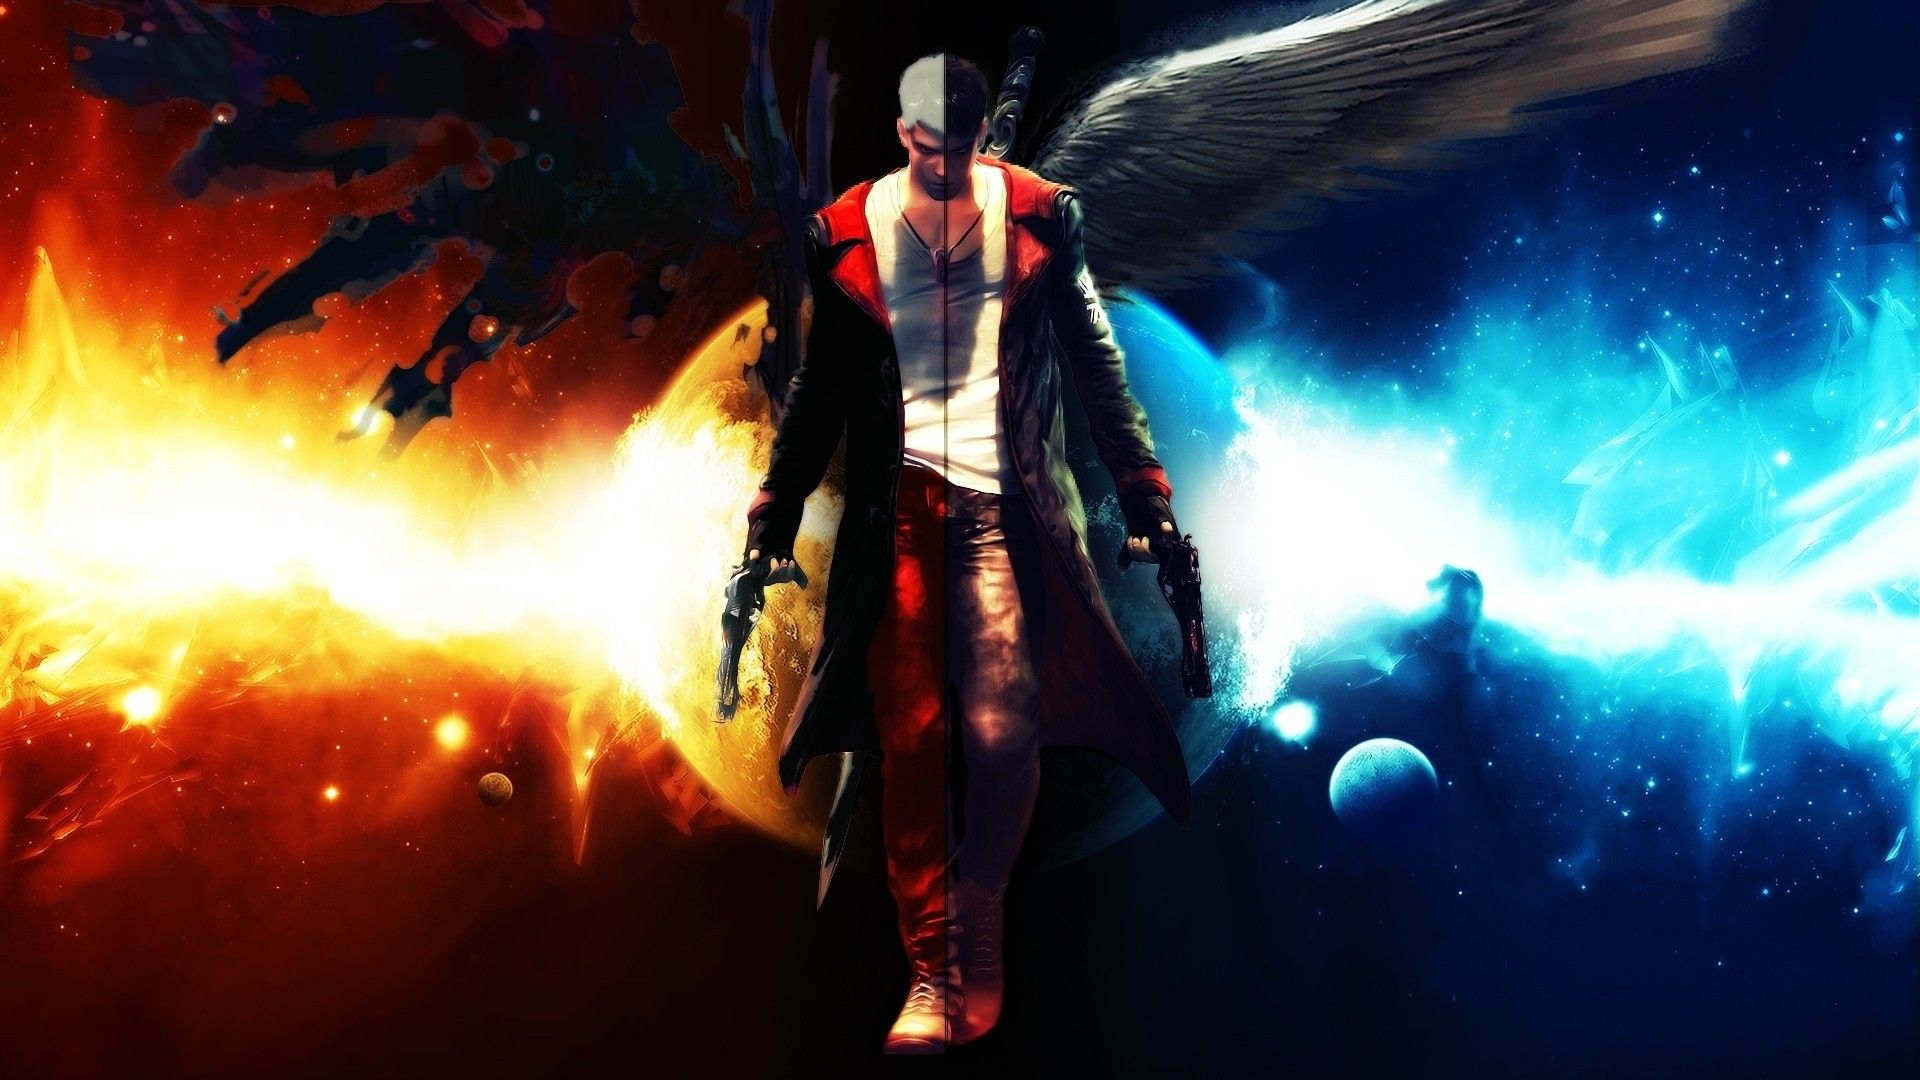 Devil May Cry Wallpapers Top Free Devil May Cry